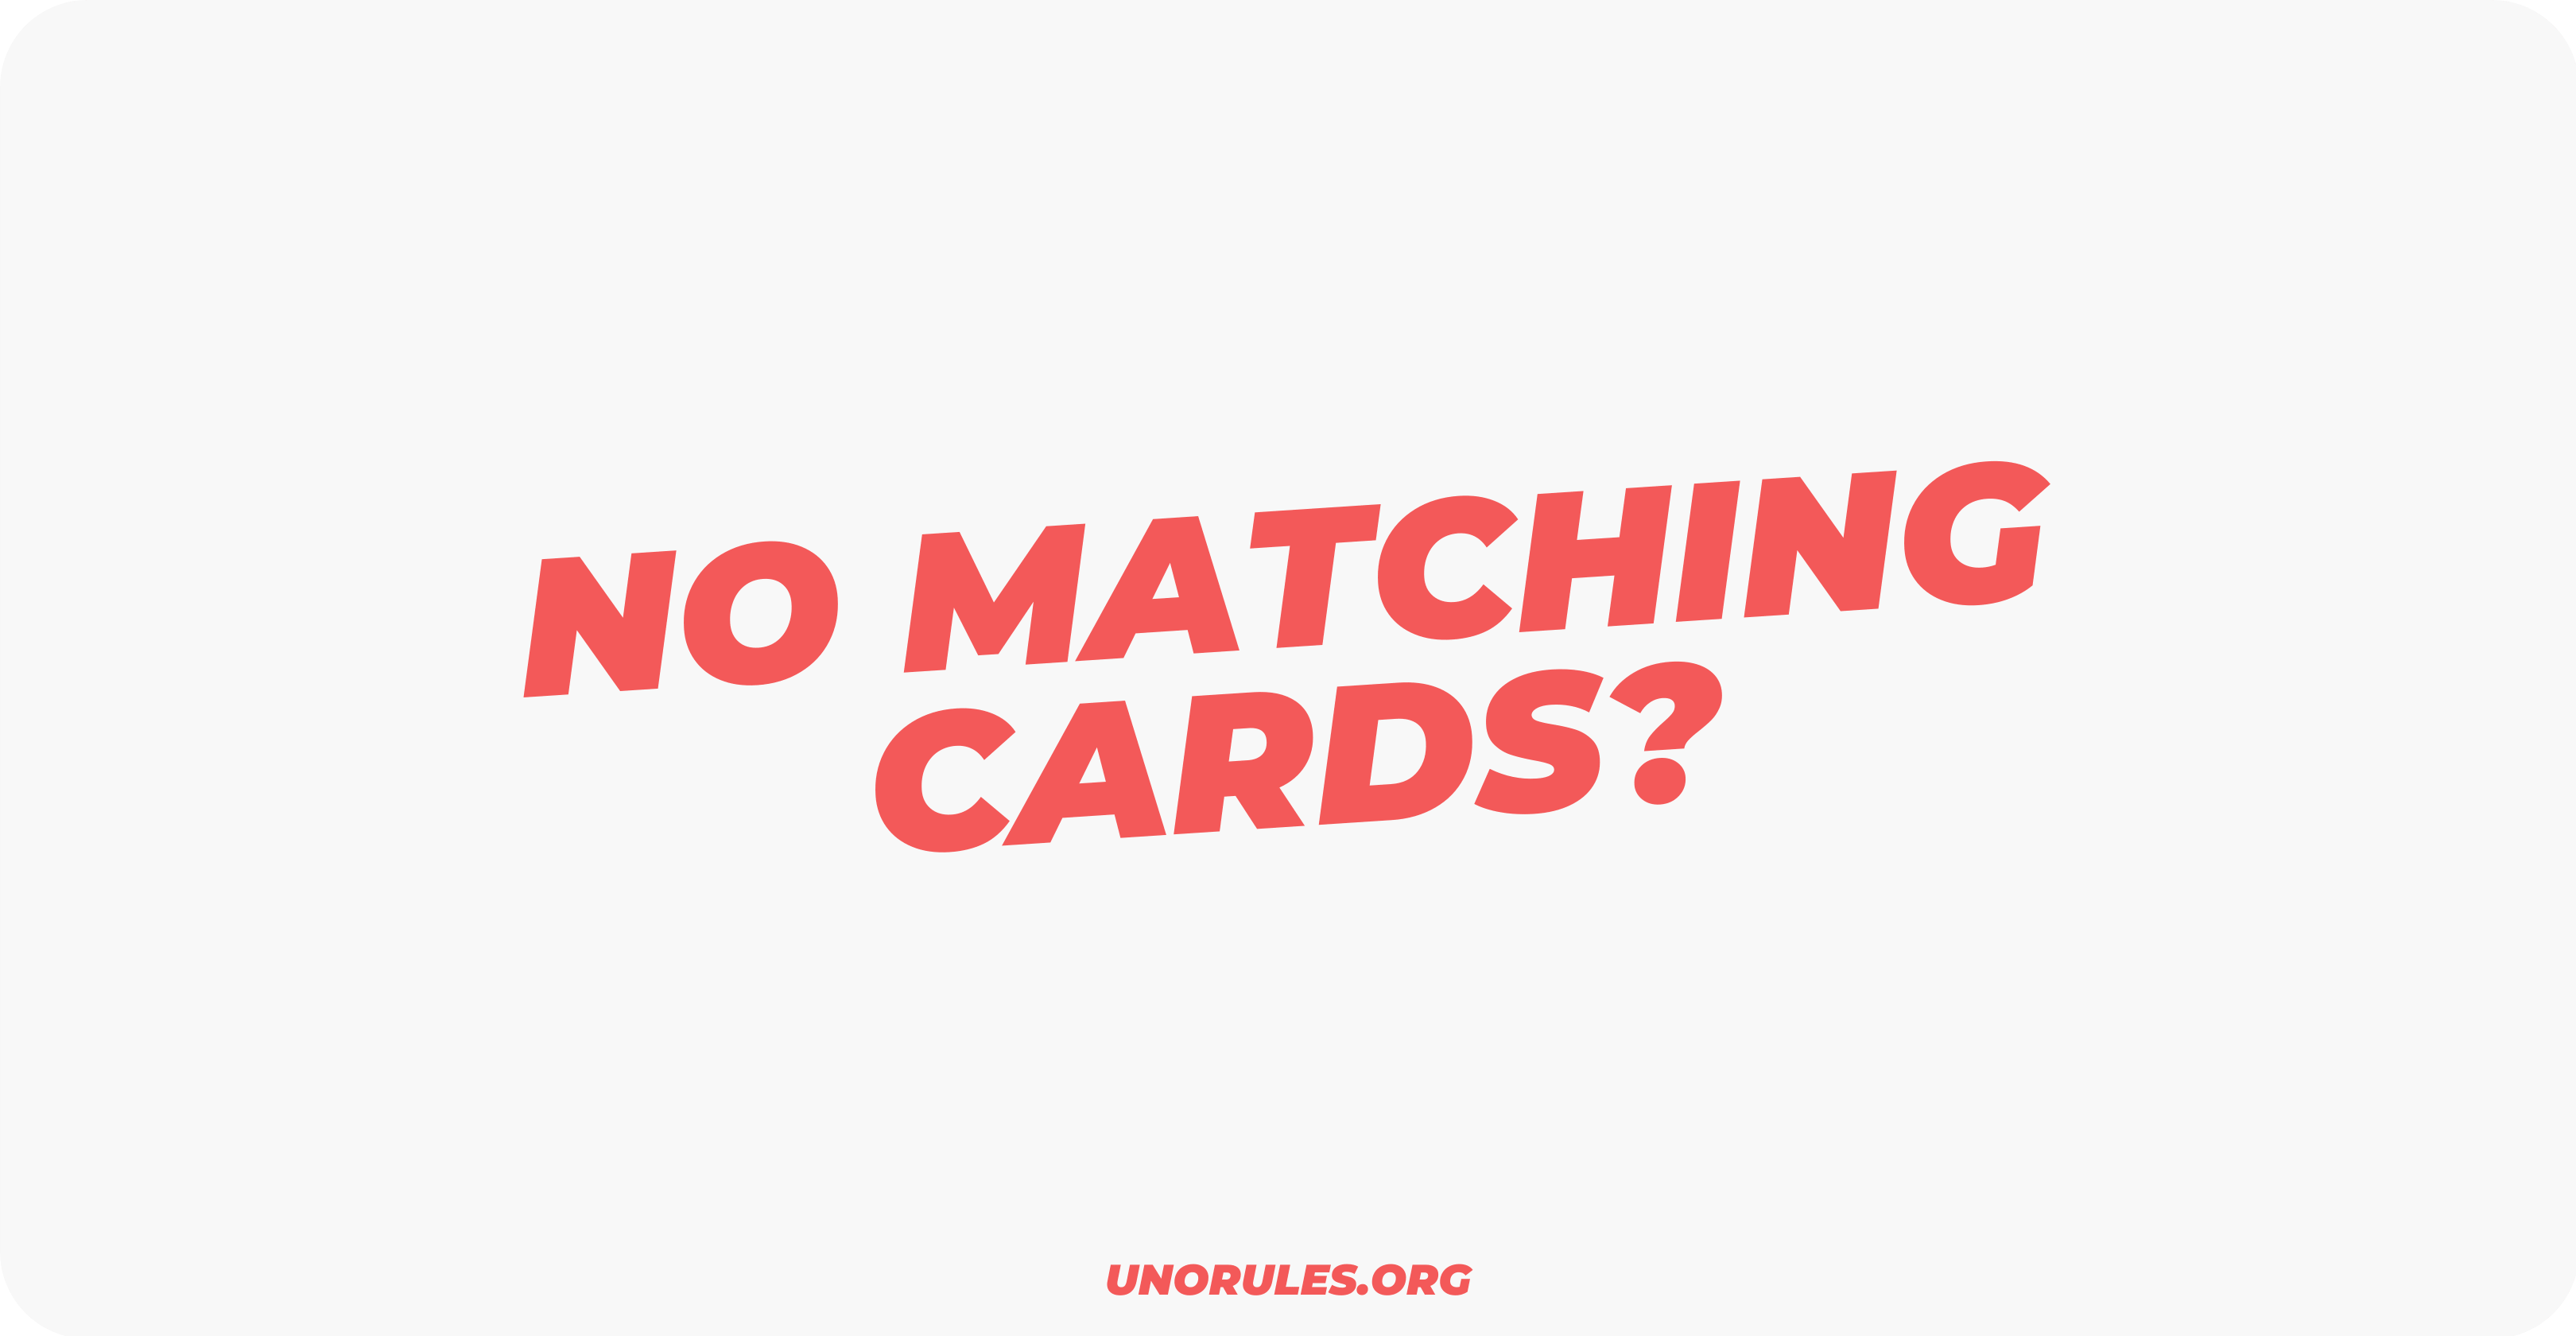 What to do during uno when you don't have a matching card